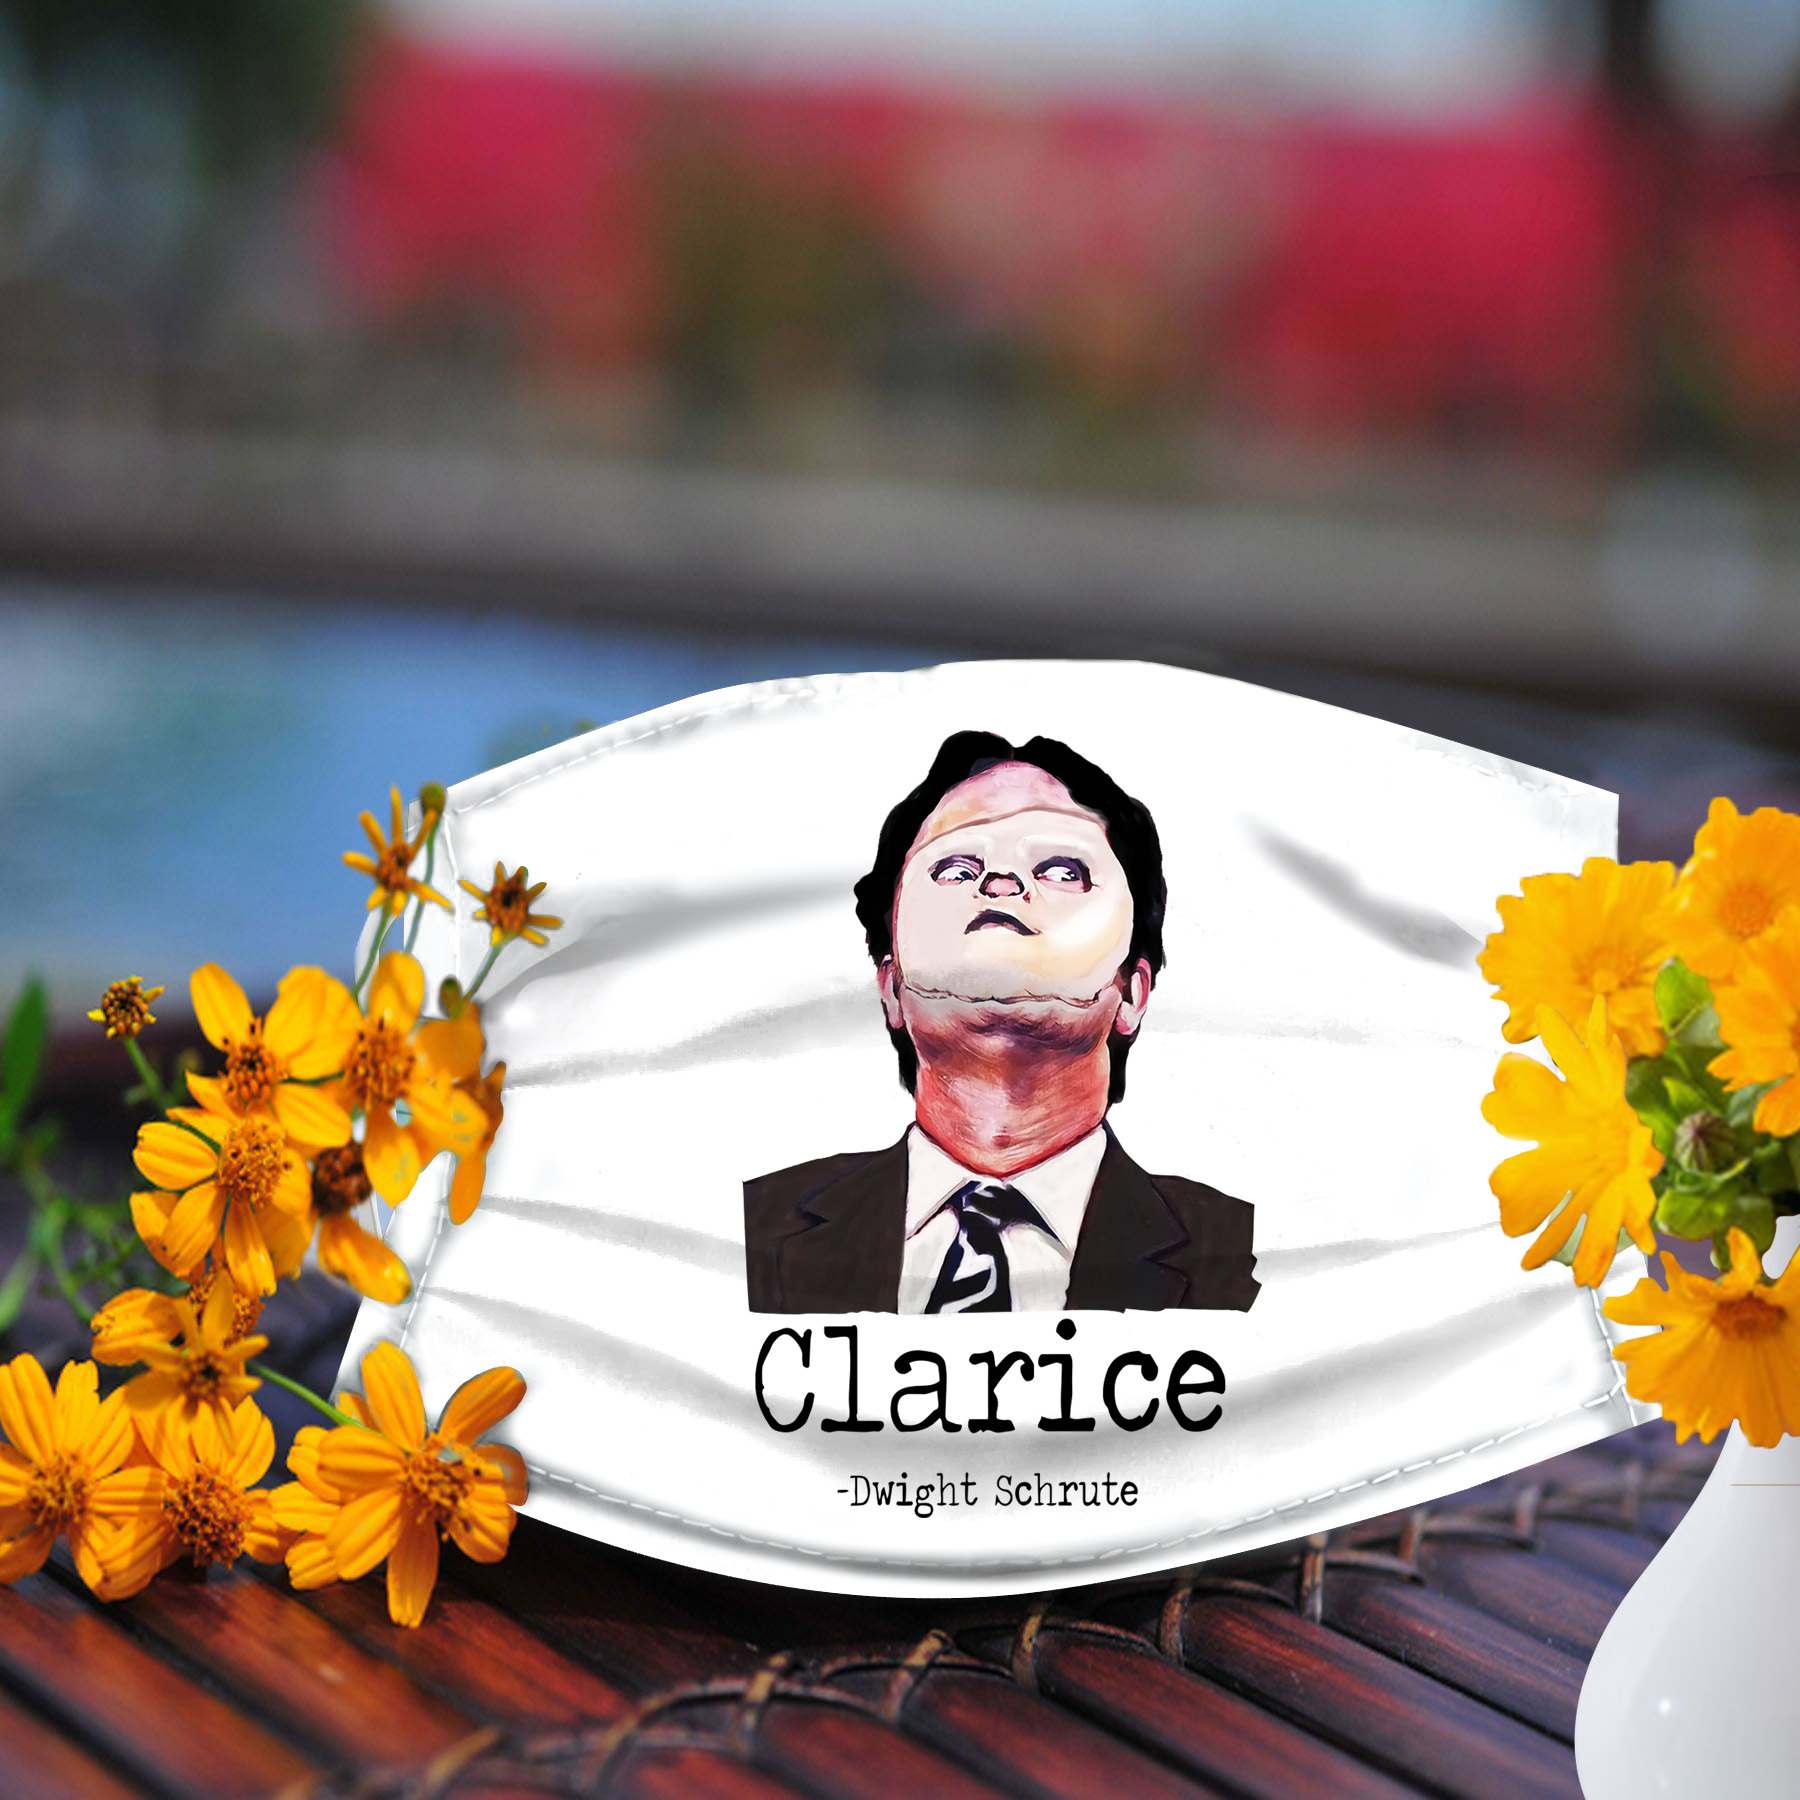 Clarice Dwight Schrute face mask, Reusable Face Mask, Machine Washable, With